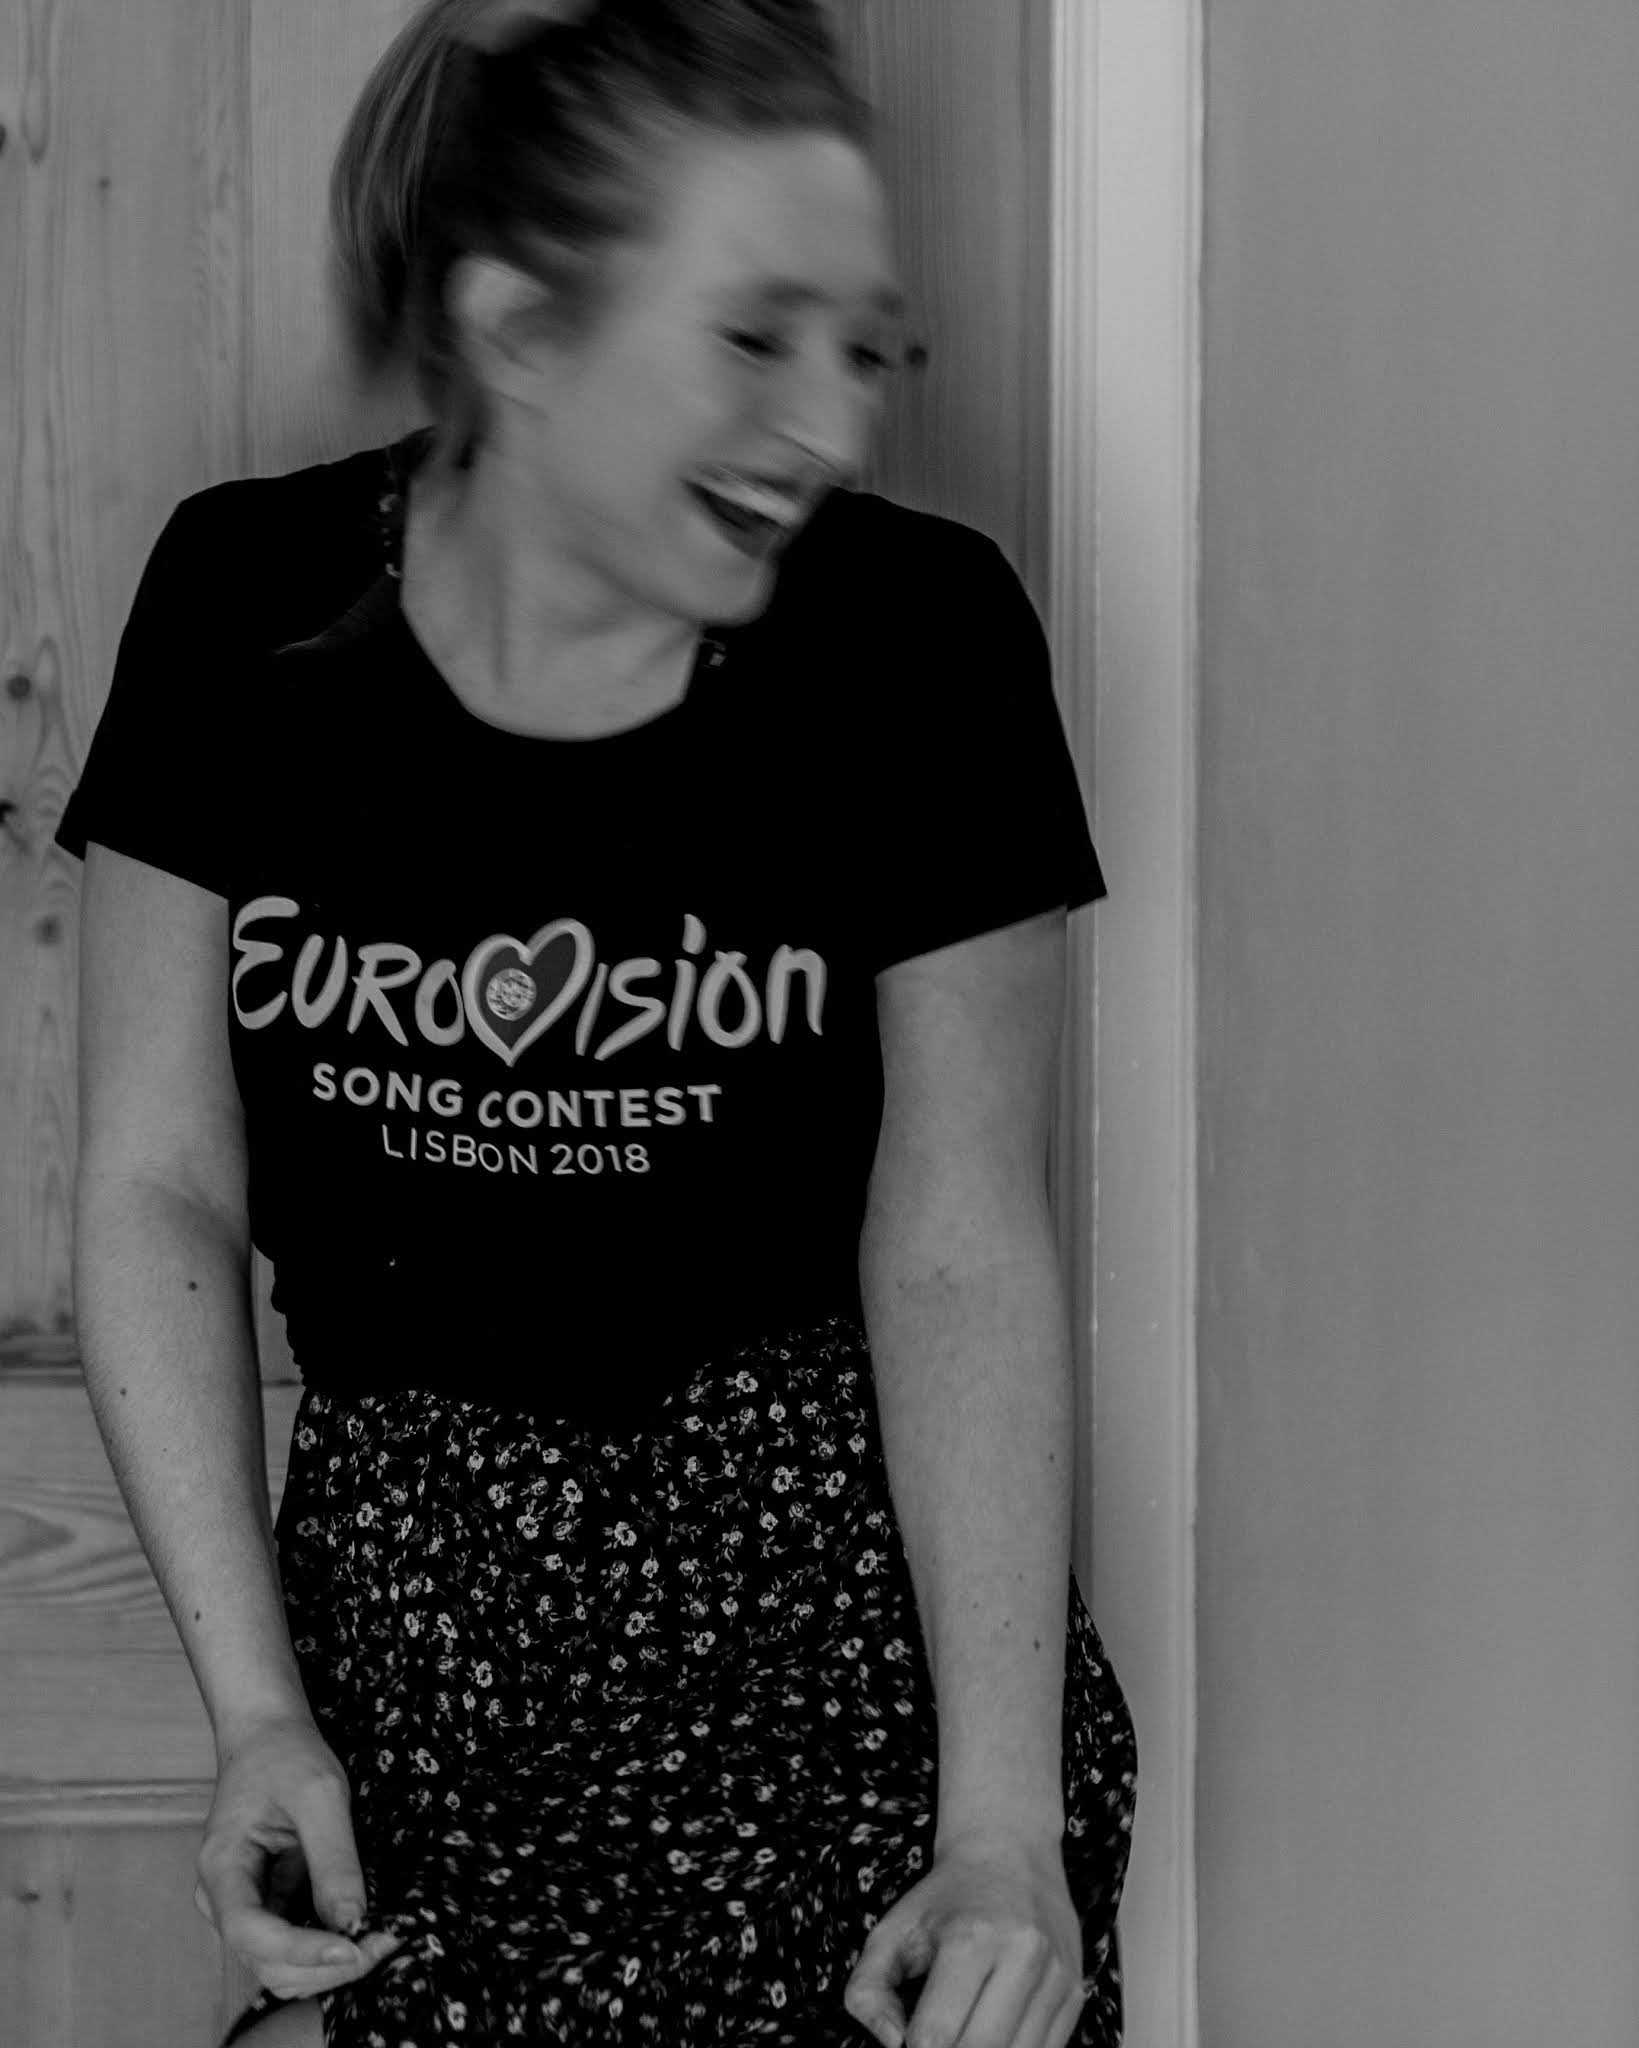 black and white photo of girl dancing in flowy floral dress and eurovision t shirt